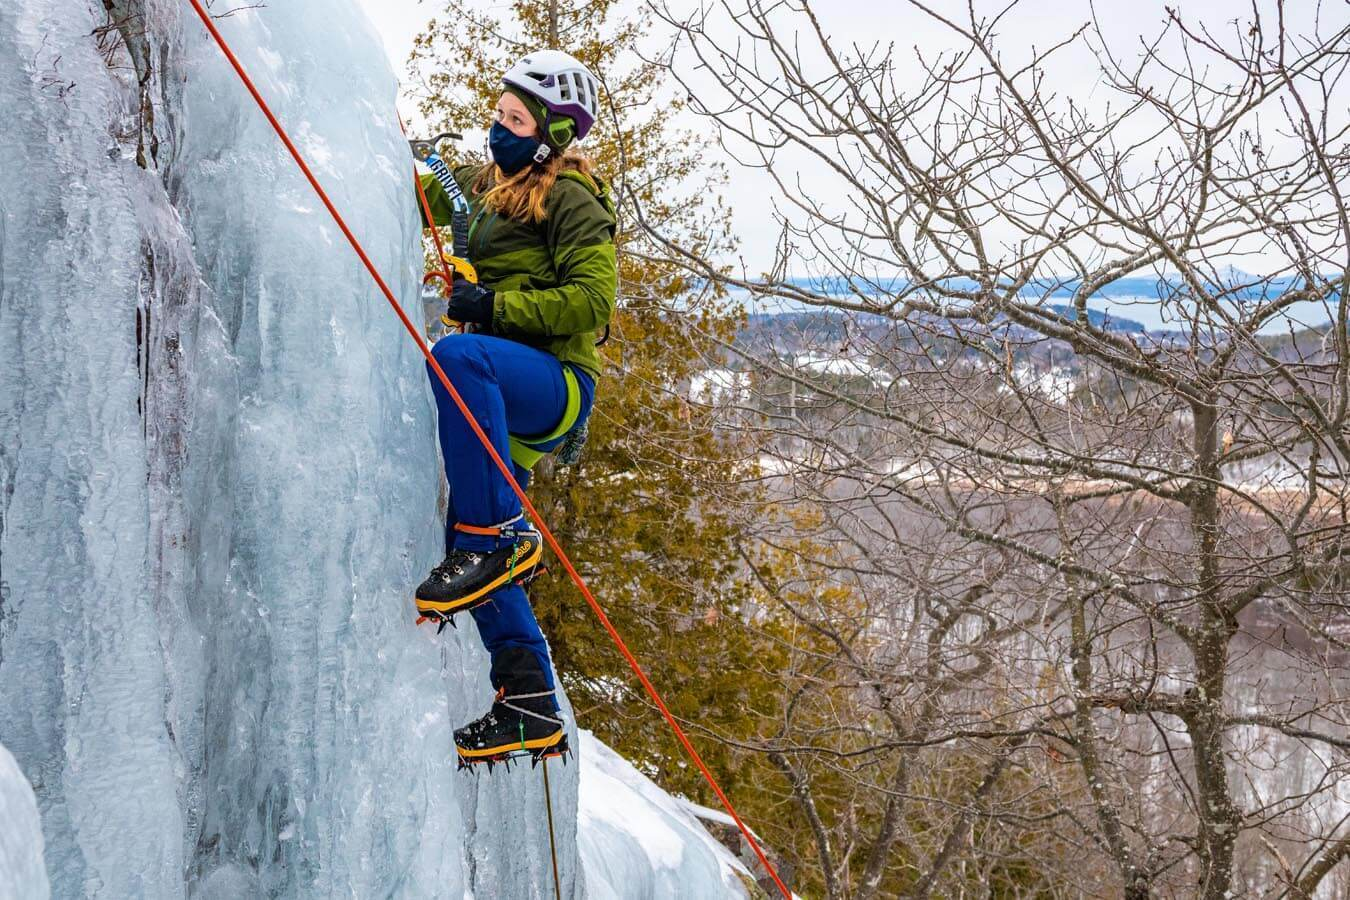 MaineBound student employees training to teach ice climbing during a trip to Acadia National Park.